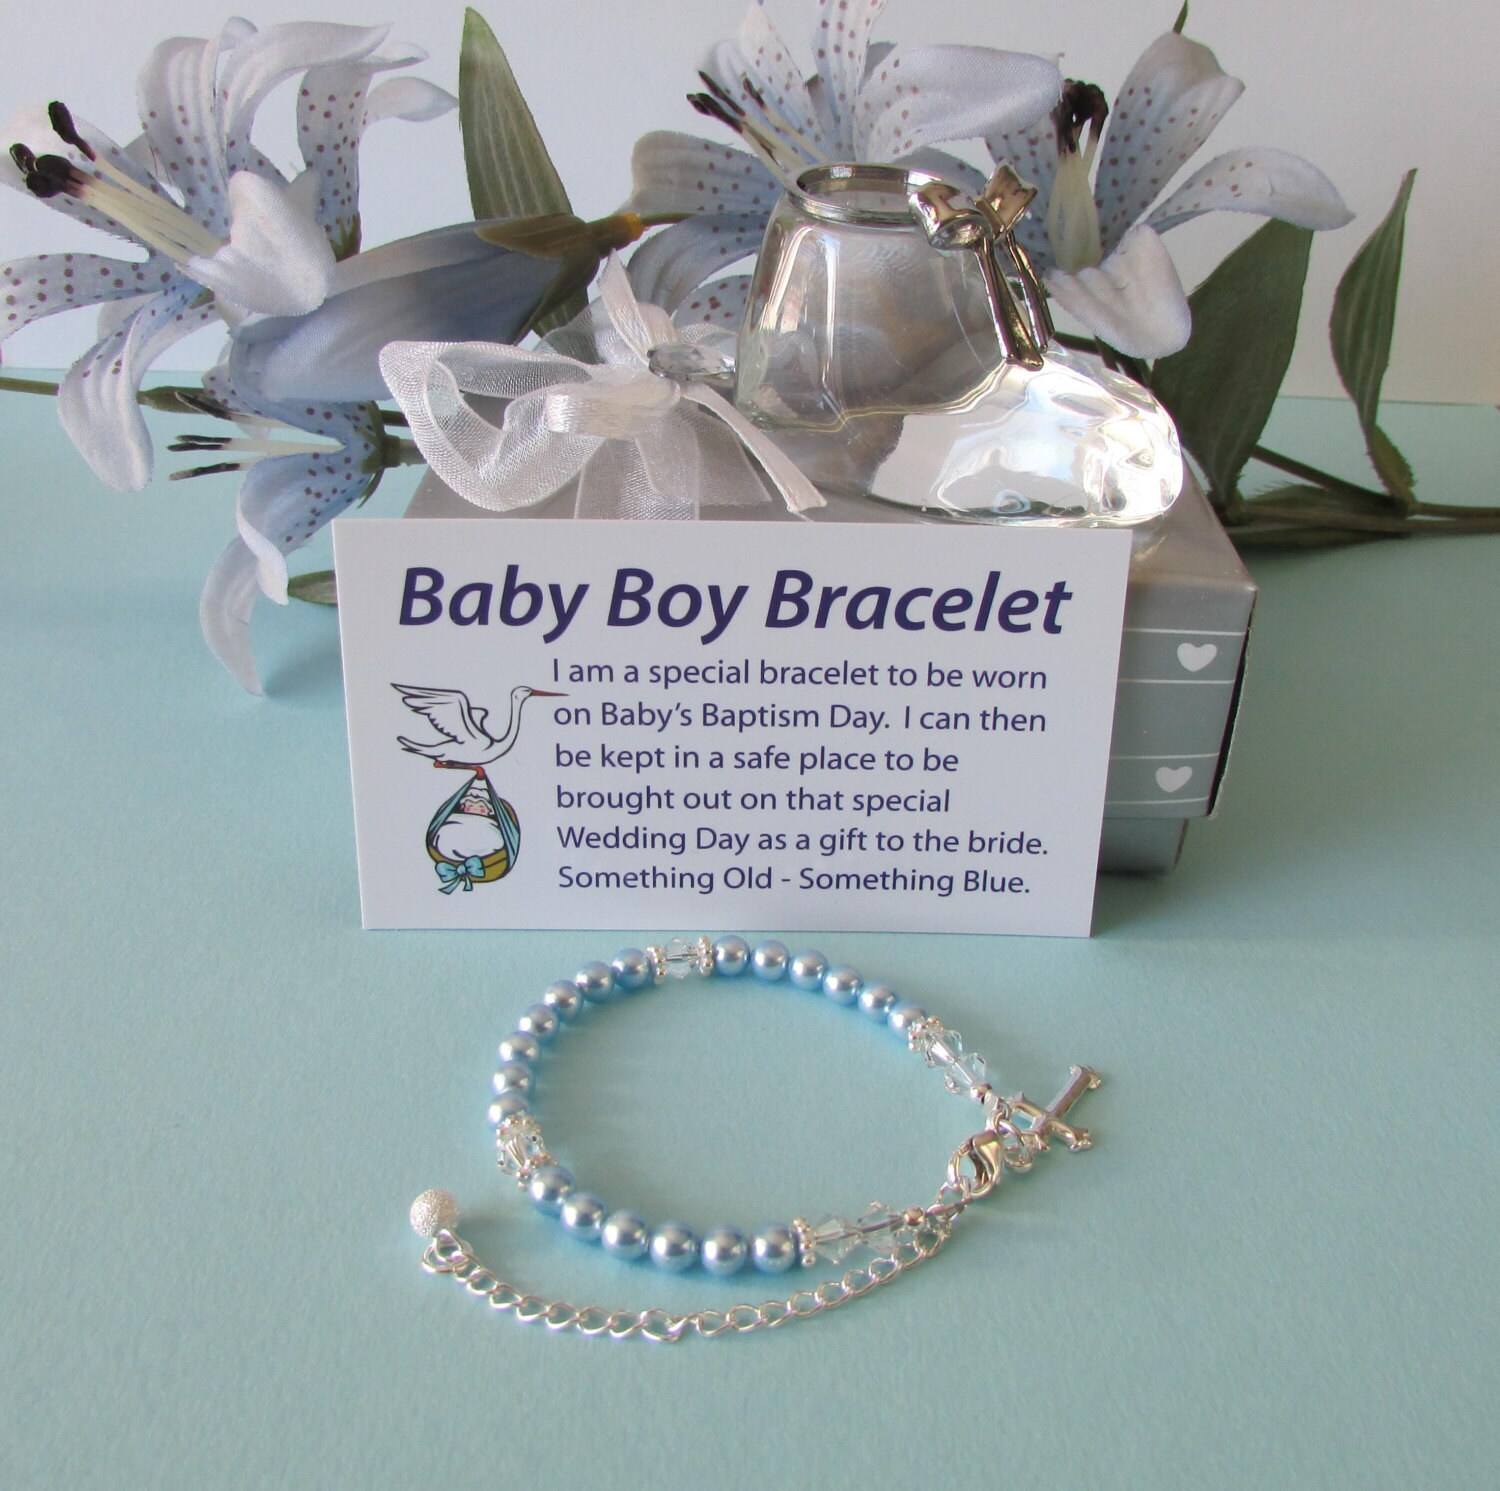 shared bluejaysdesigns flower new bracelet girl photo on a wedding day will my pin etsy bridesmaid you be